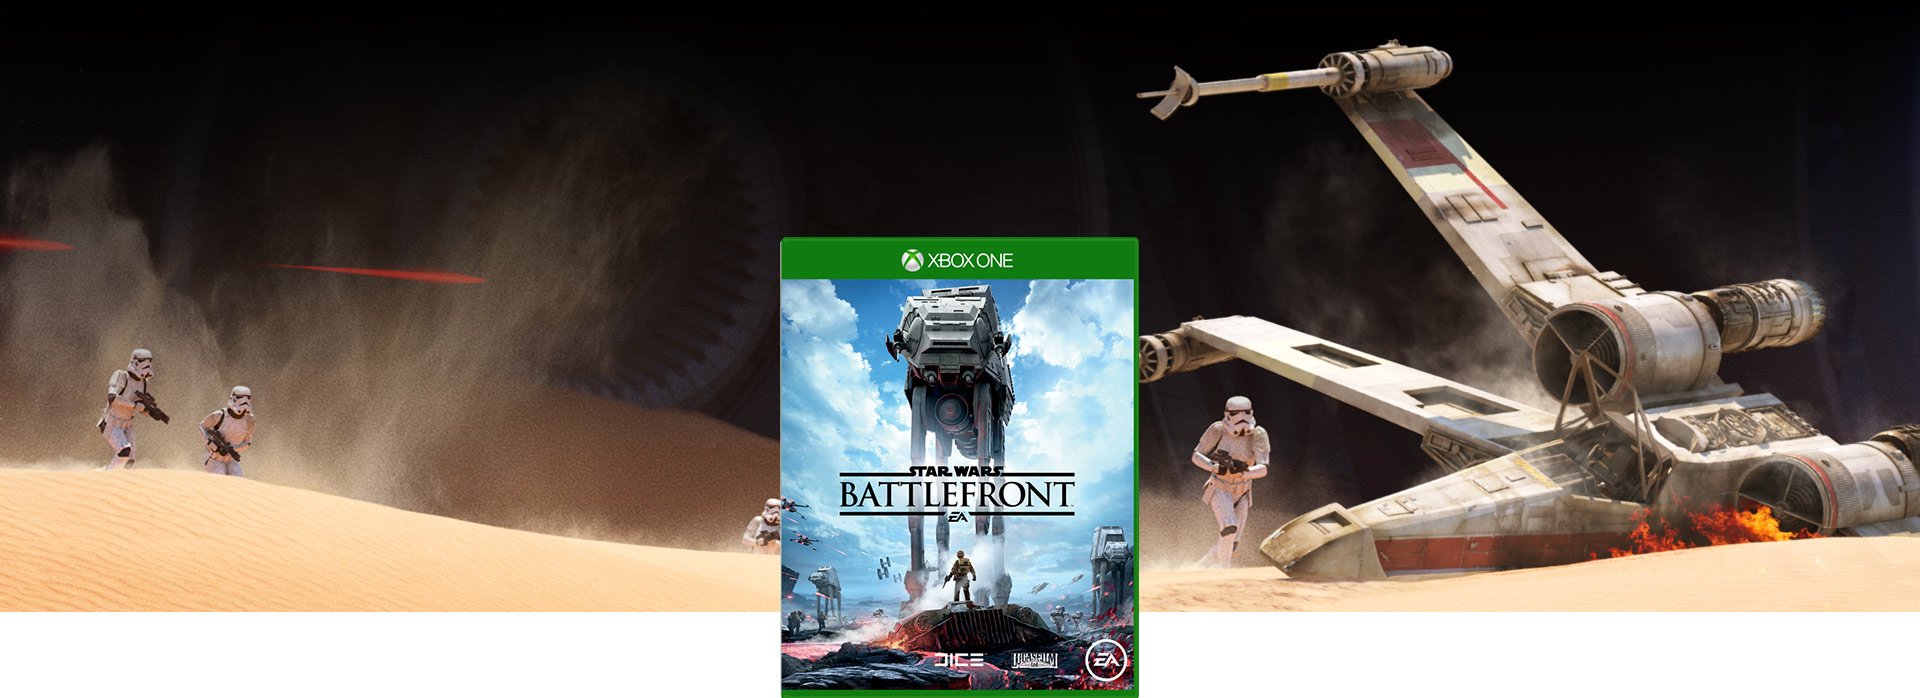 Star Wars Battlefront-coverbilde